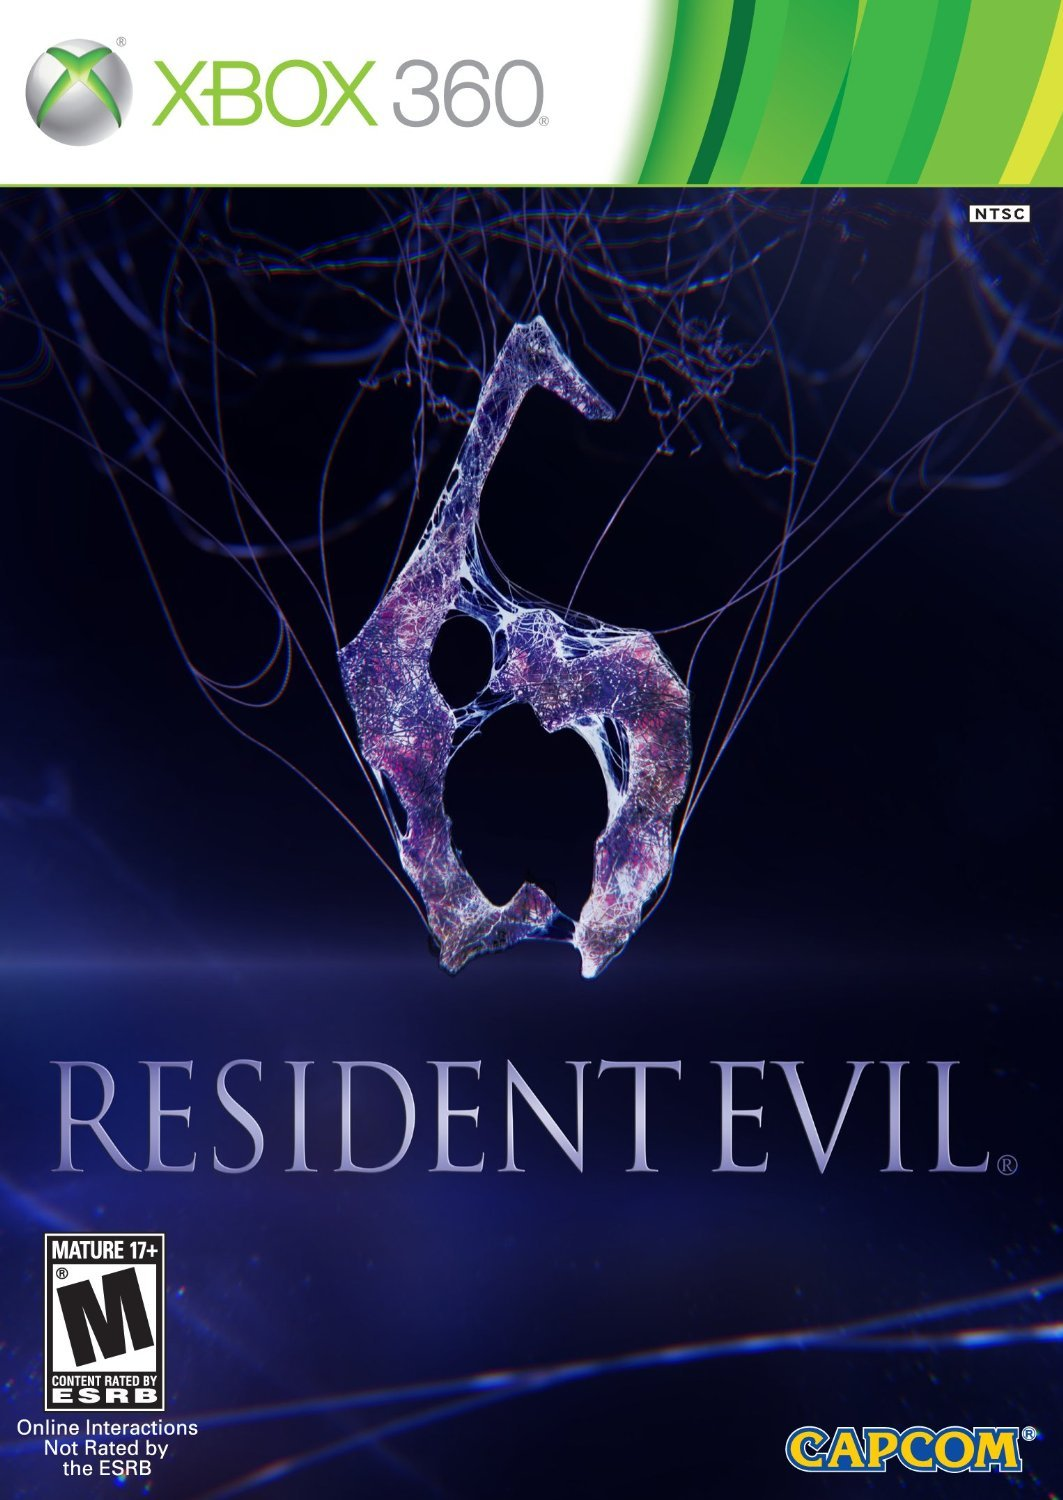 Game On New Console Bundles & Offers!! Upto 80% off On Vedio Games By Amazon | Resident Evil 6 Standard Edition (Xbox 360) @ Rs.399